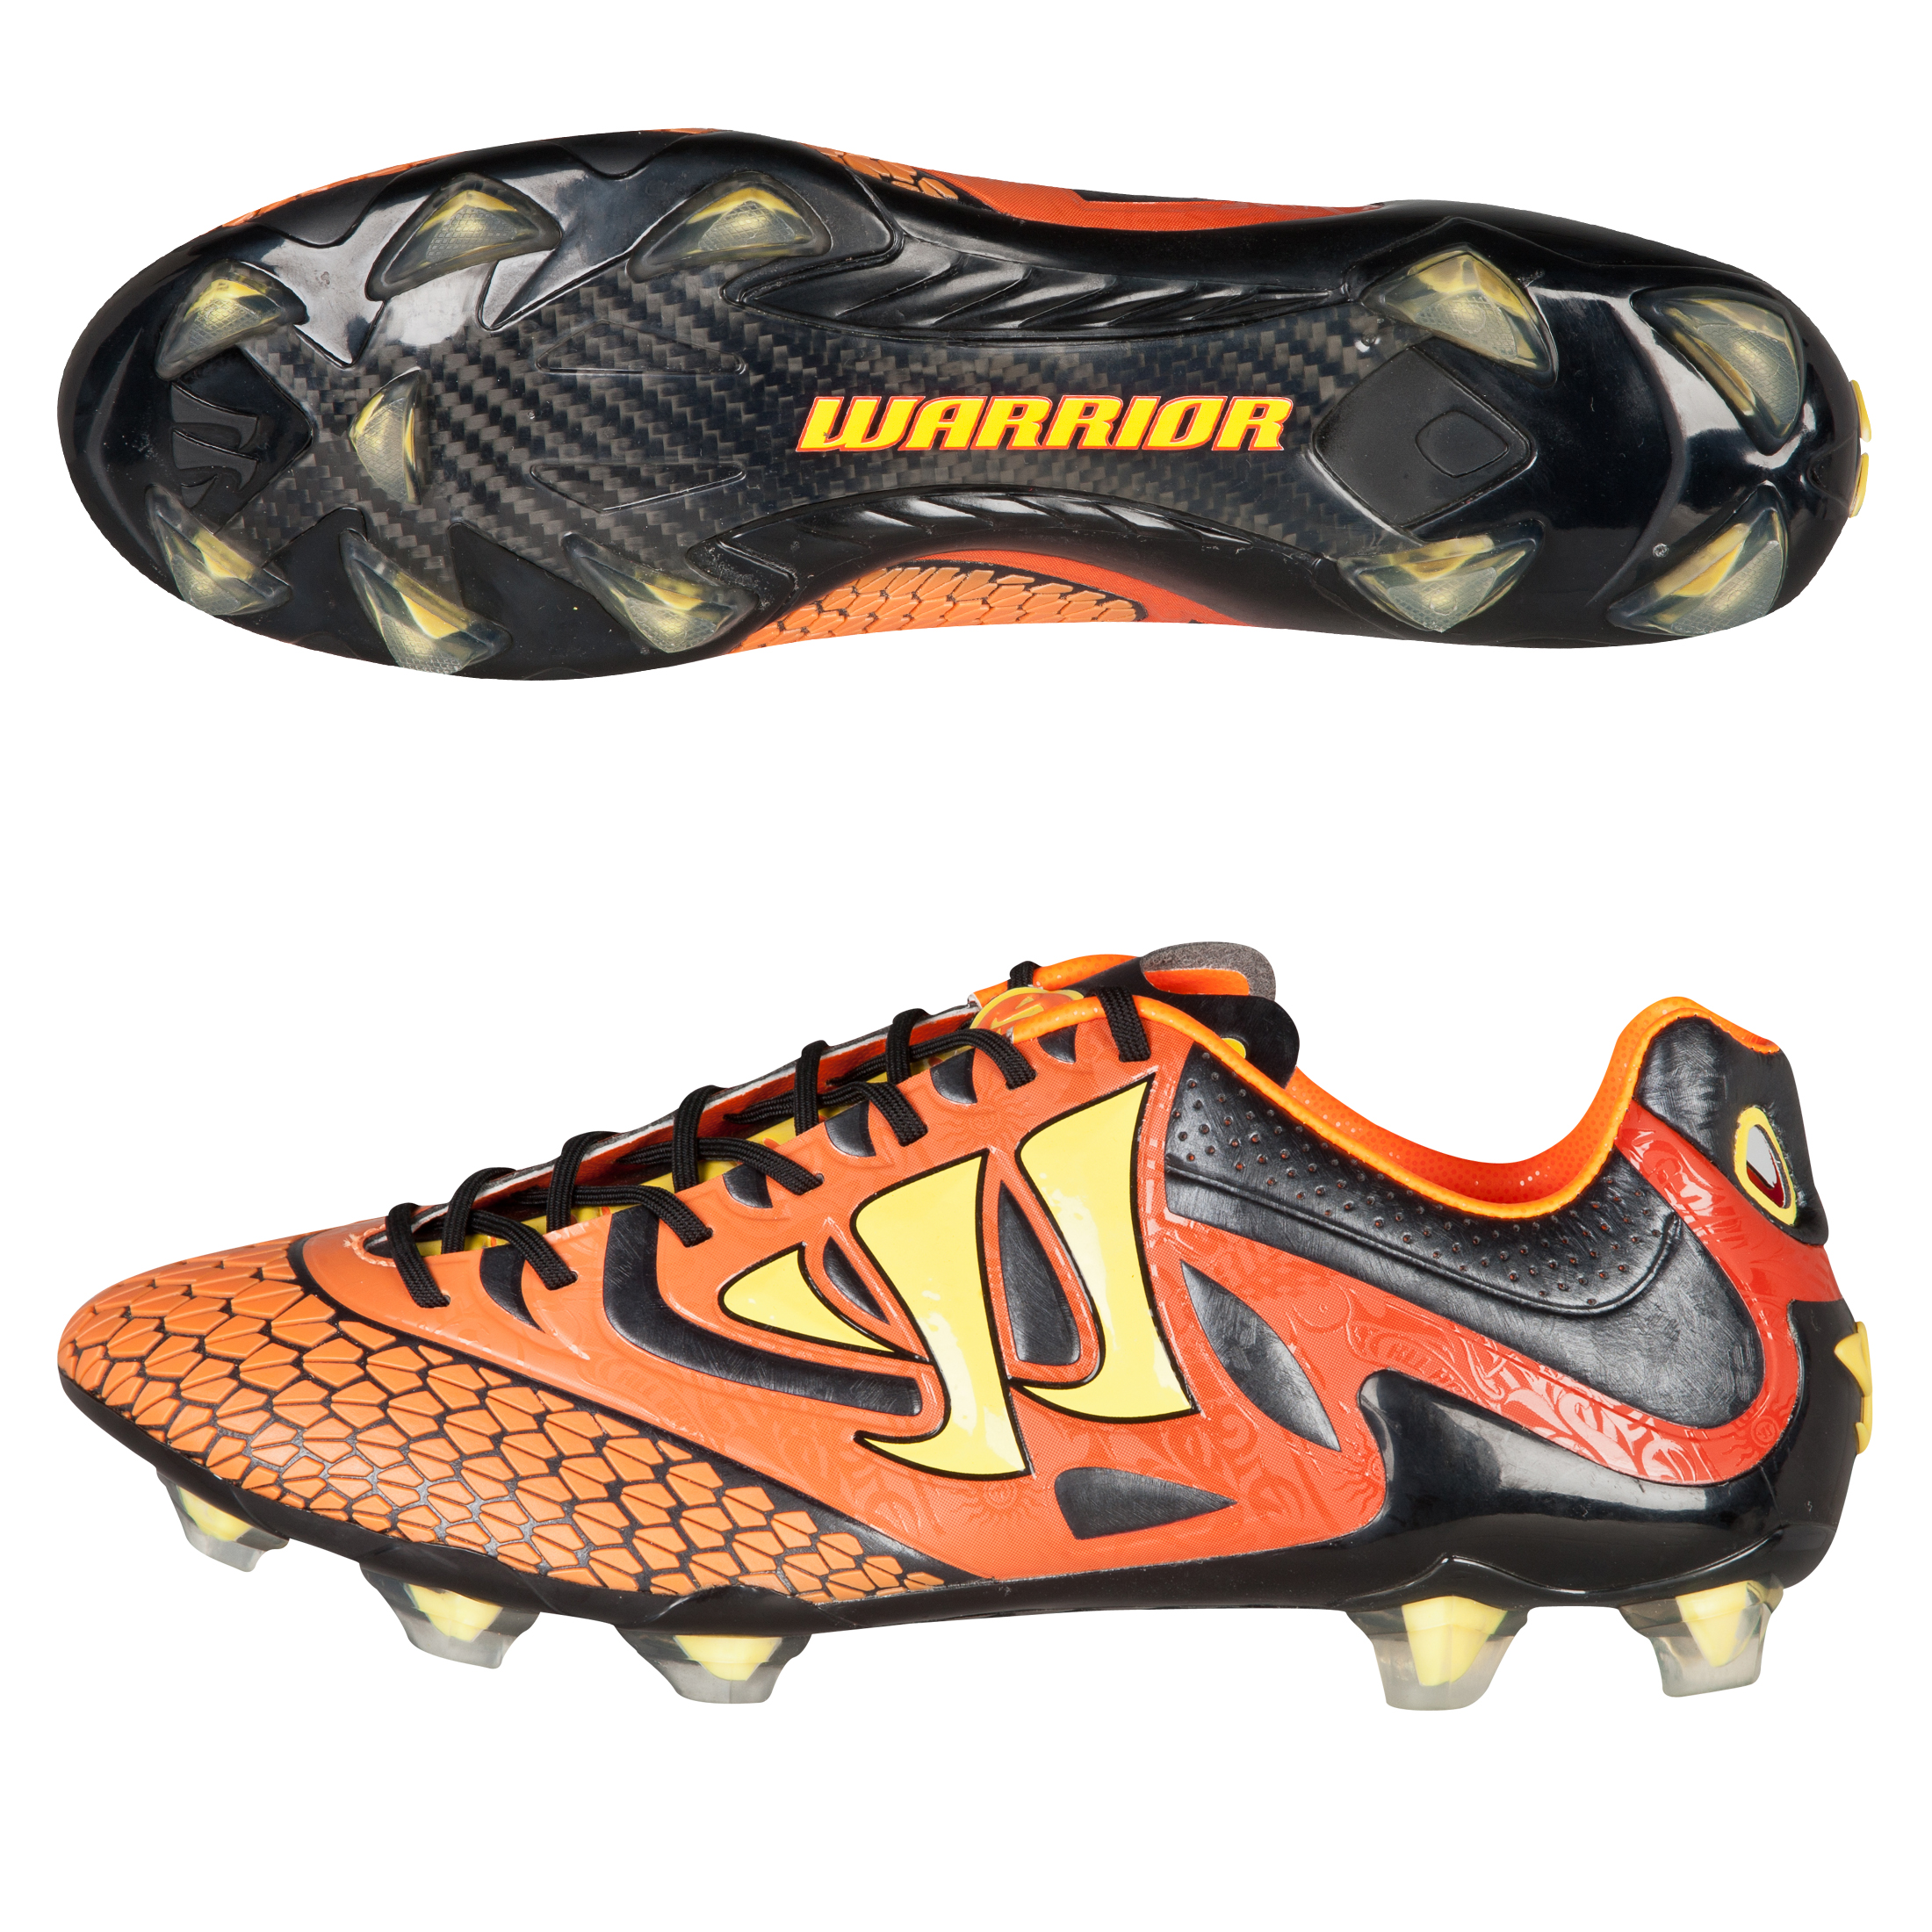 Warrior Sports Skreamer S-Lite Firm Ground Football Boots-Ebony/Orange/Yellow Black